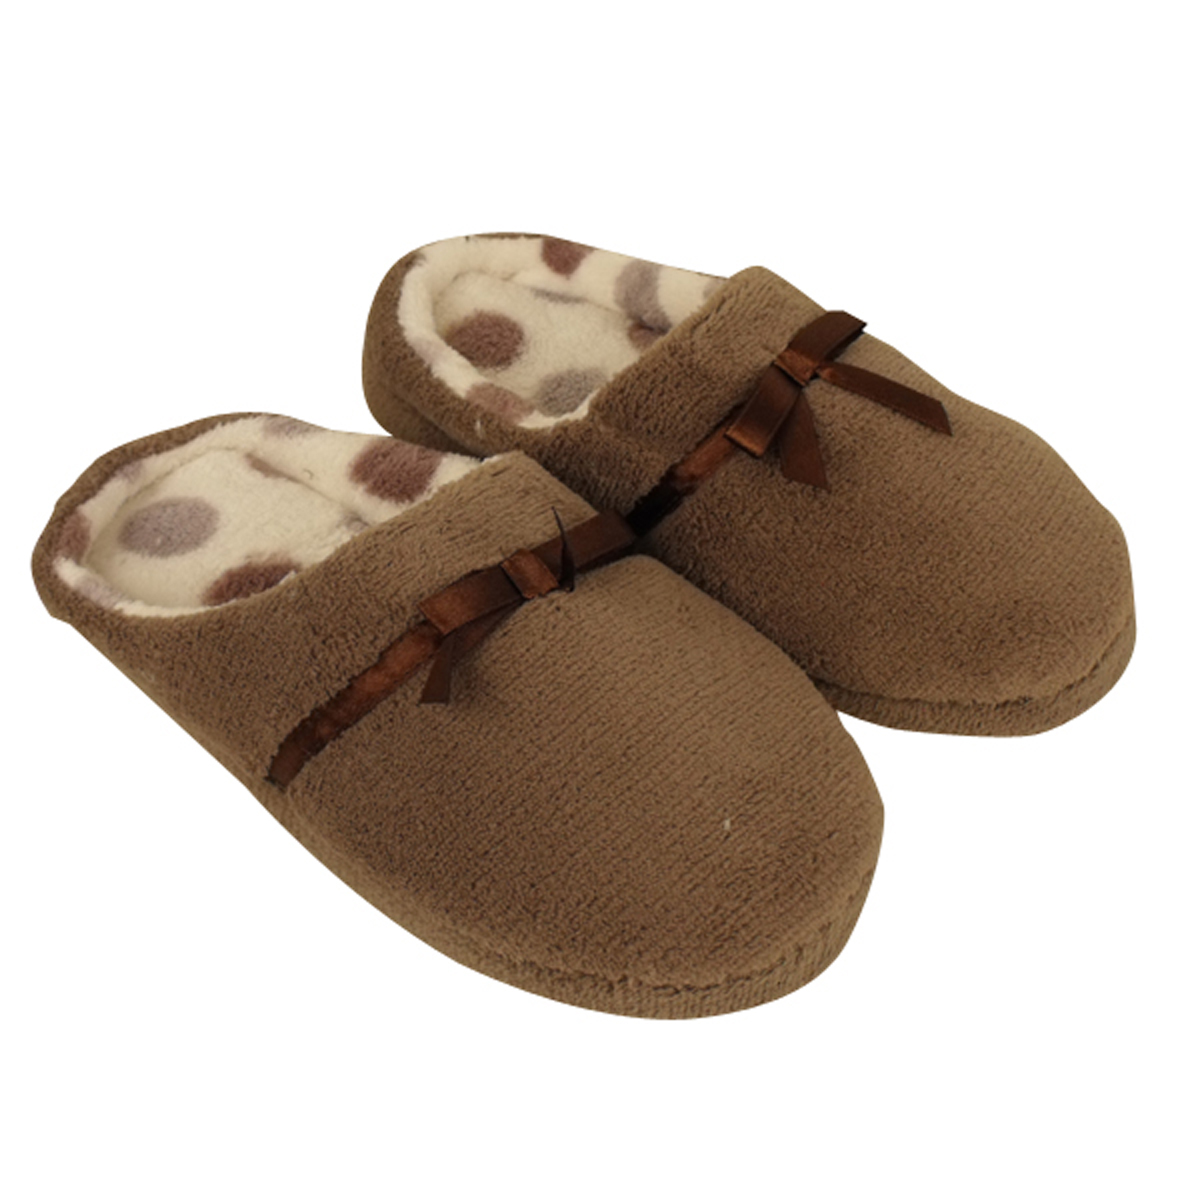 Cover your feet in style with women's slippers from Kohl's. No matter which style of women's footwear you prefer, we have them all! Our selection of women's .